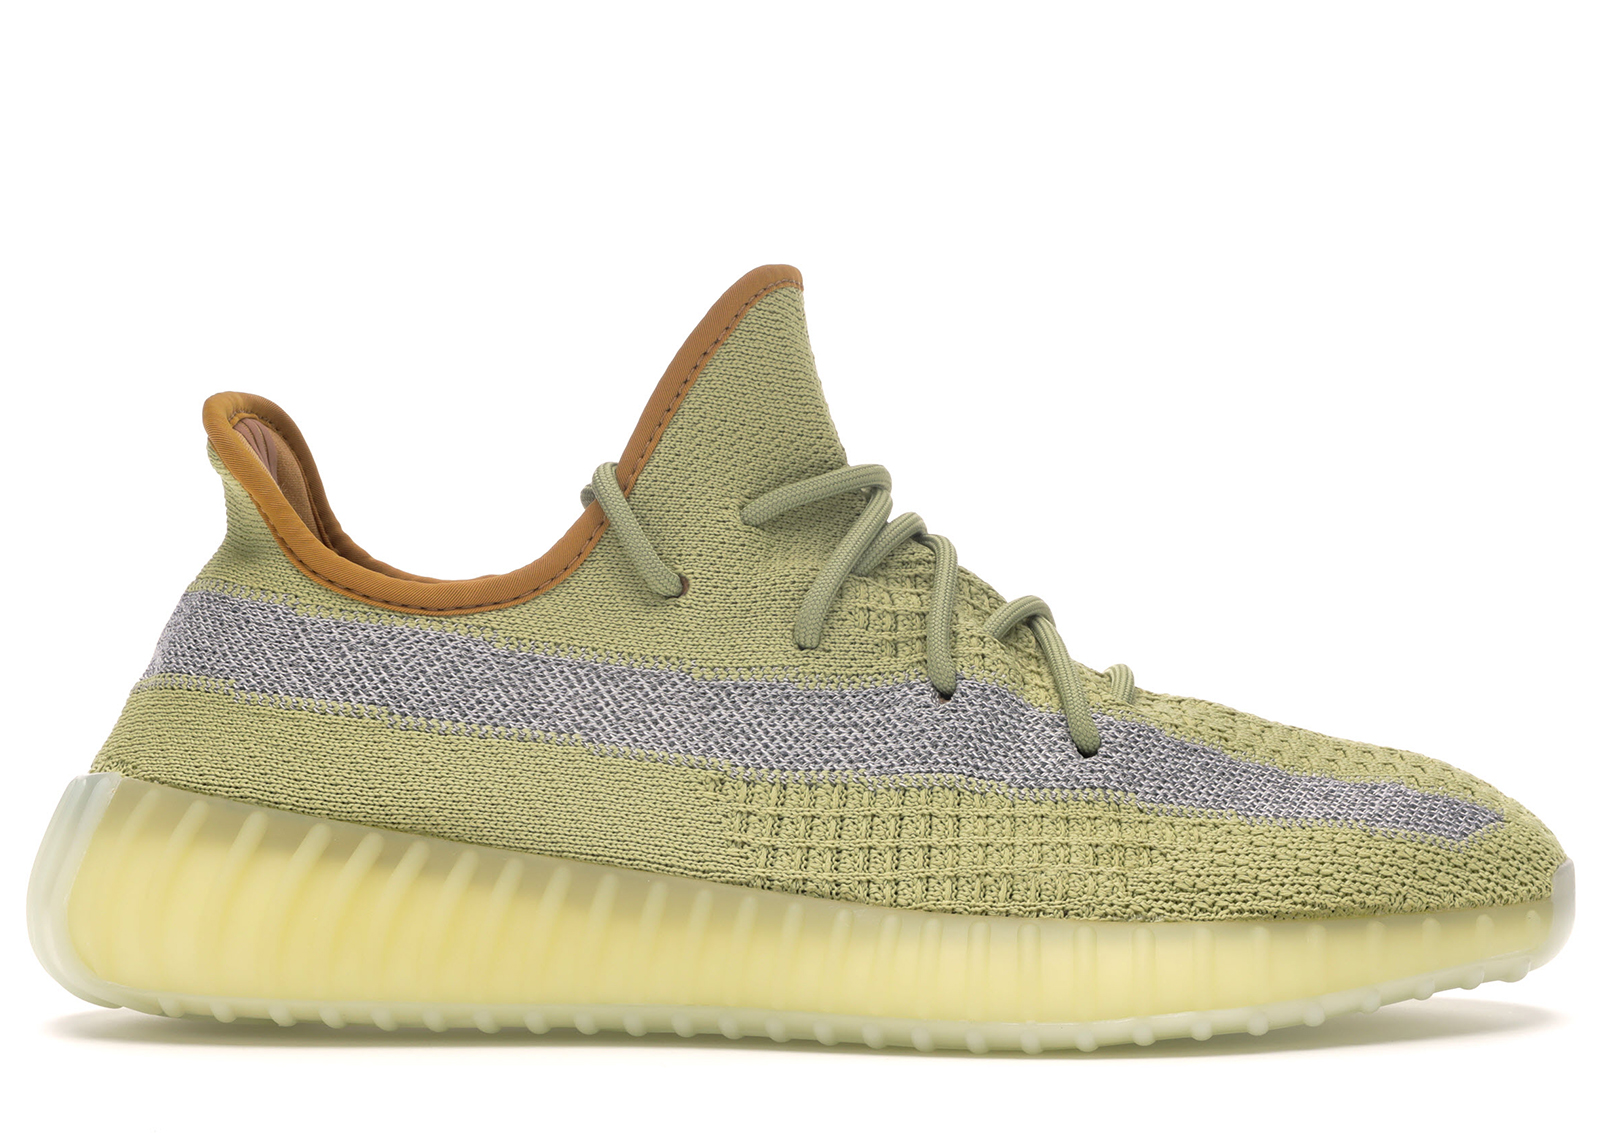 Now Available: adidas Yeezy Boost 350 V2